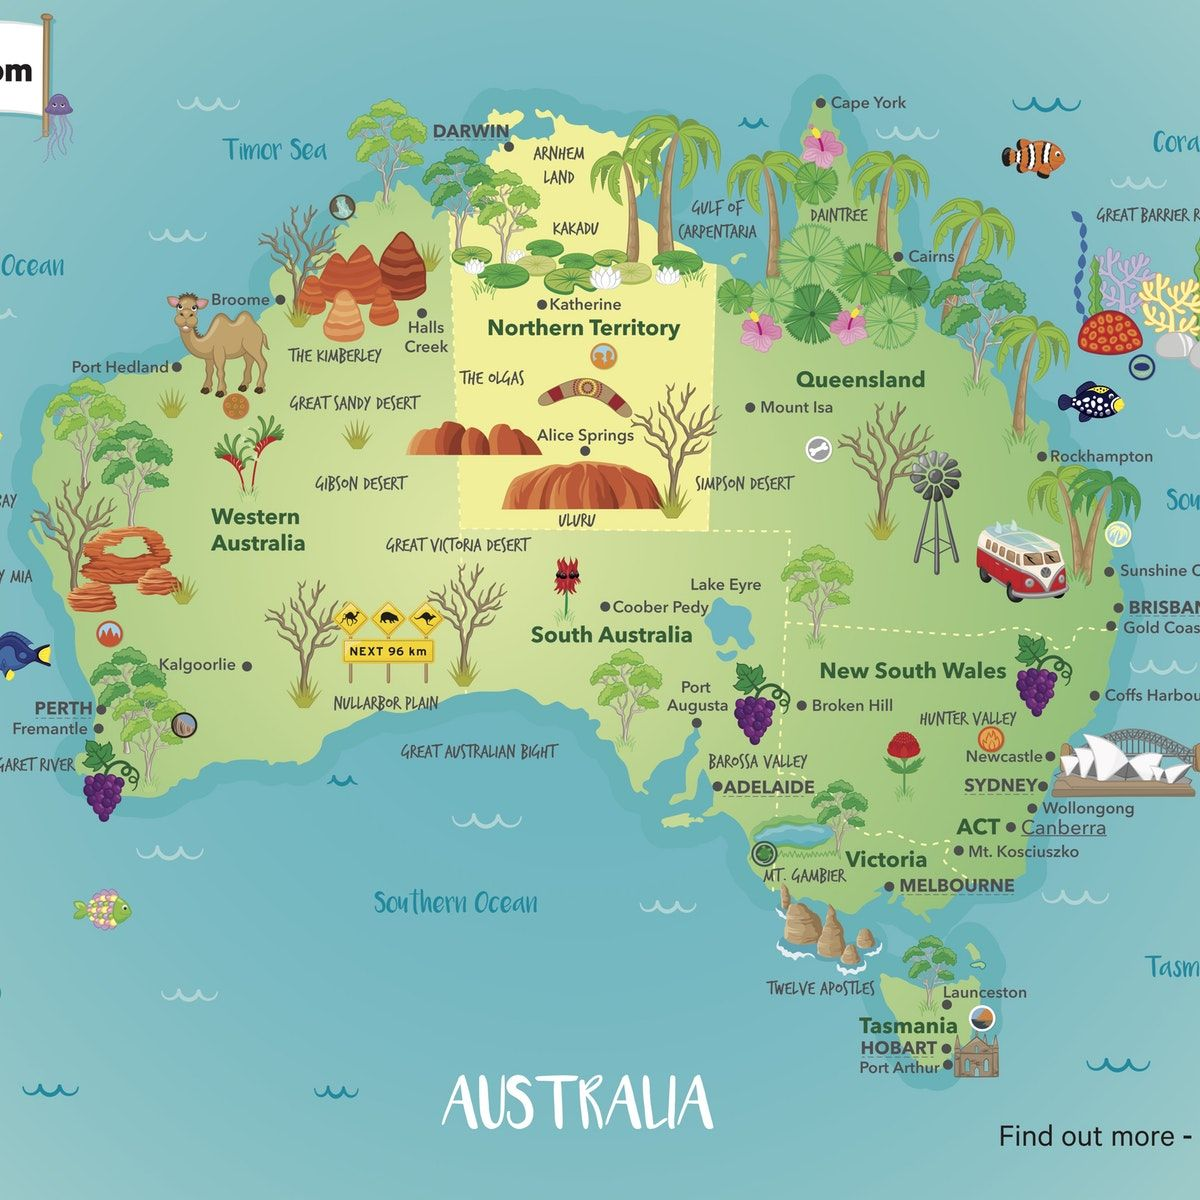 Map Of Australia For Students.Pin On Places I Want To Go Australia